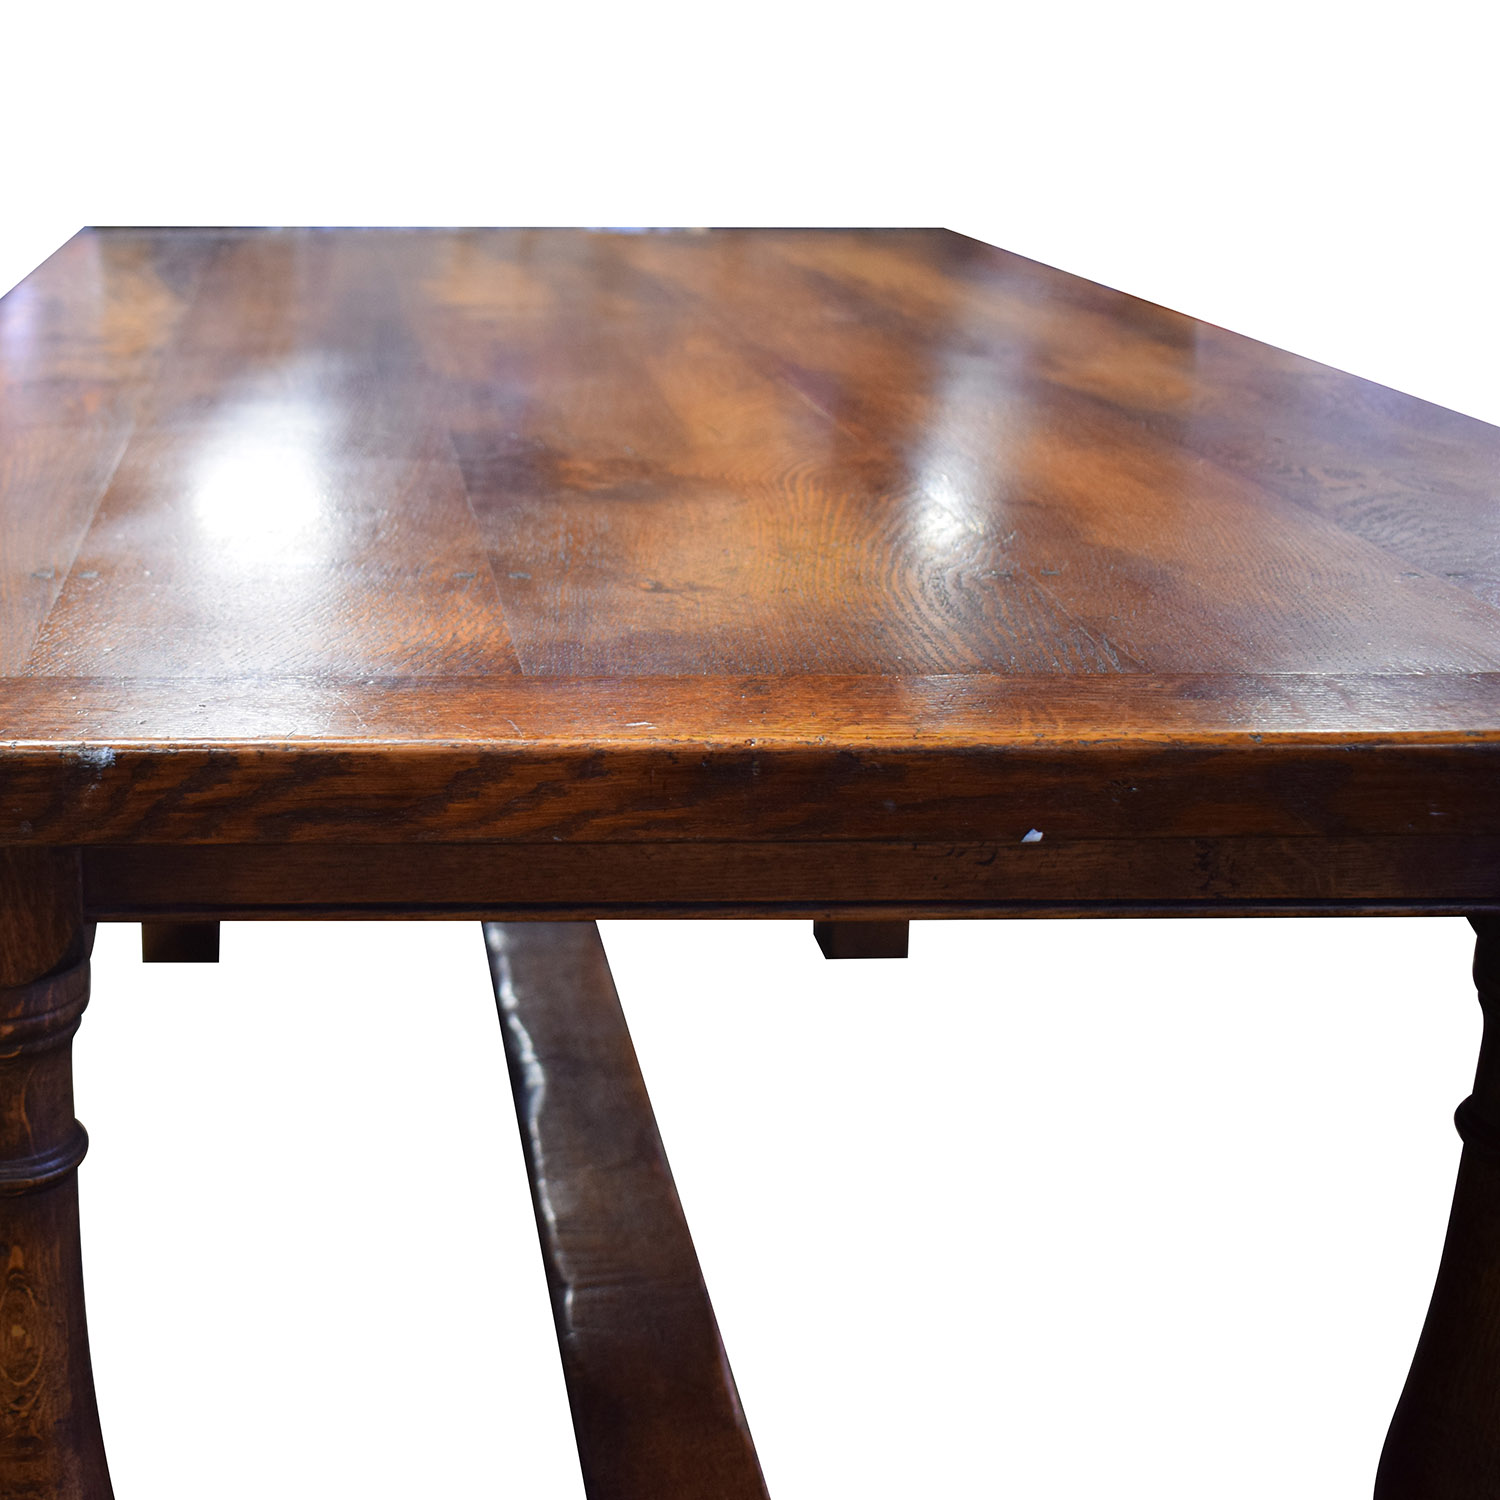 Fauld Fauld Refectory Wood Dining Table used